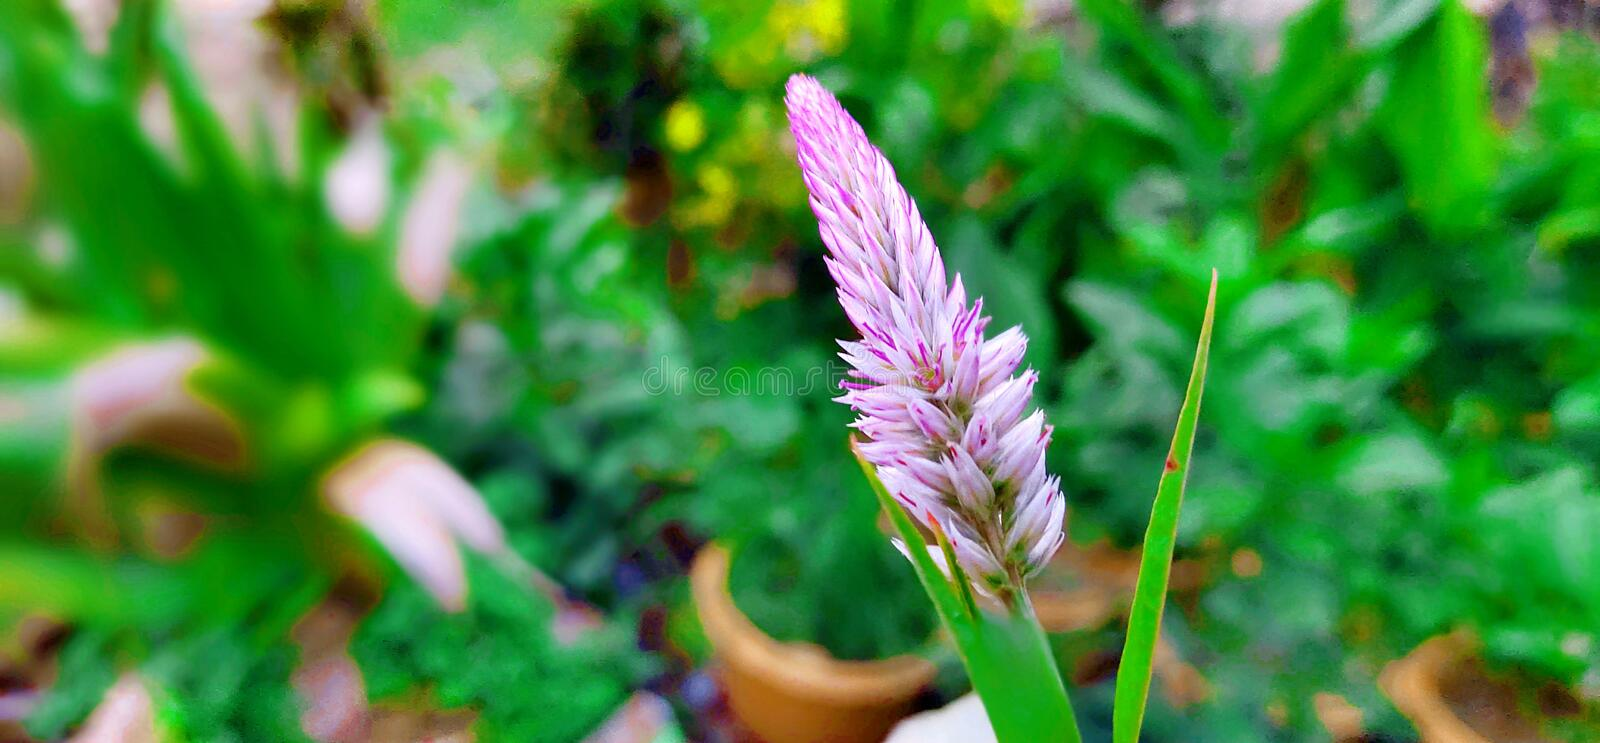 This is the flower of Cambodia. Whiteflower, thereare, nonotatall stock photography